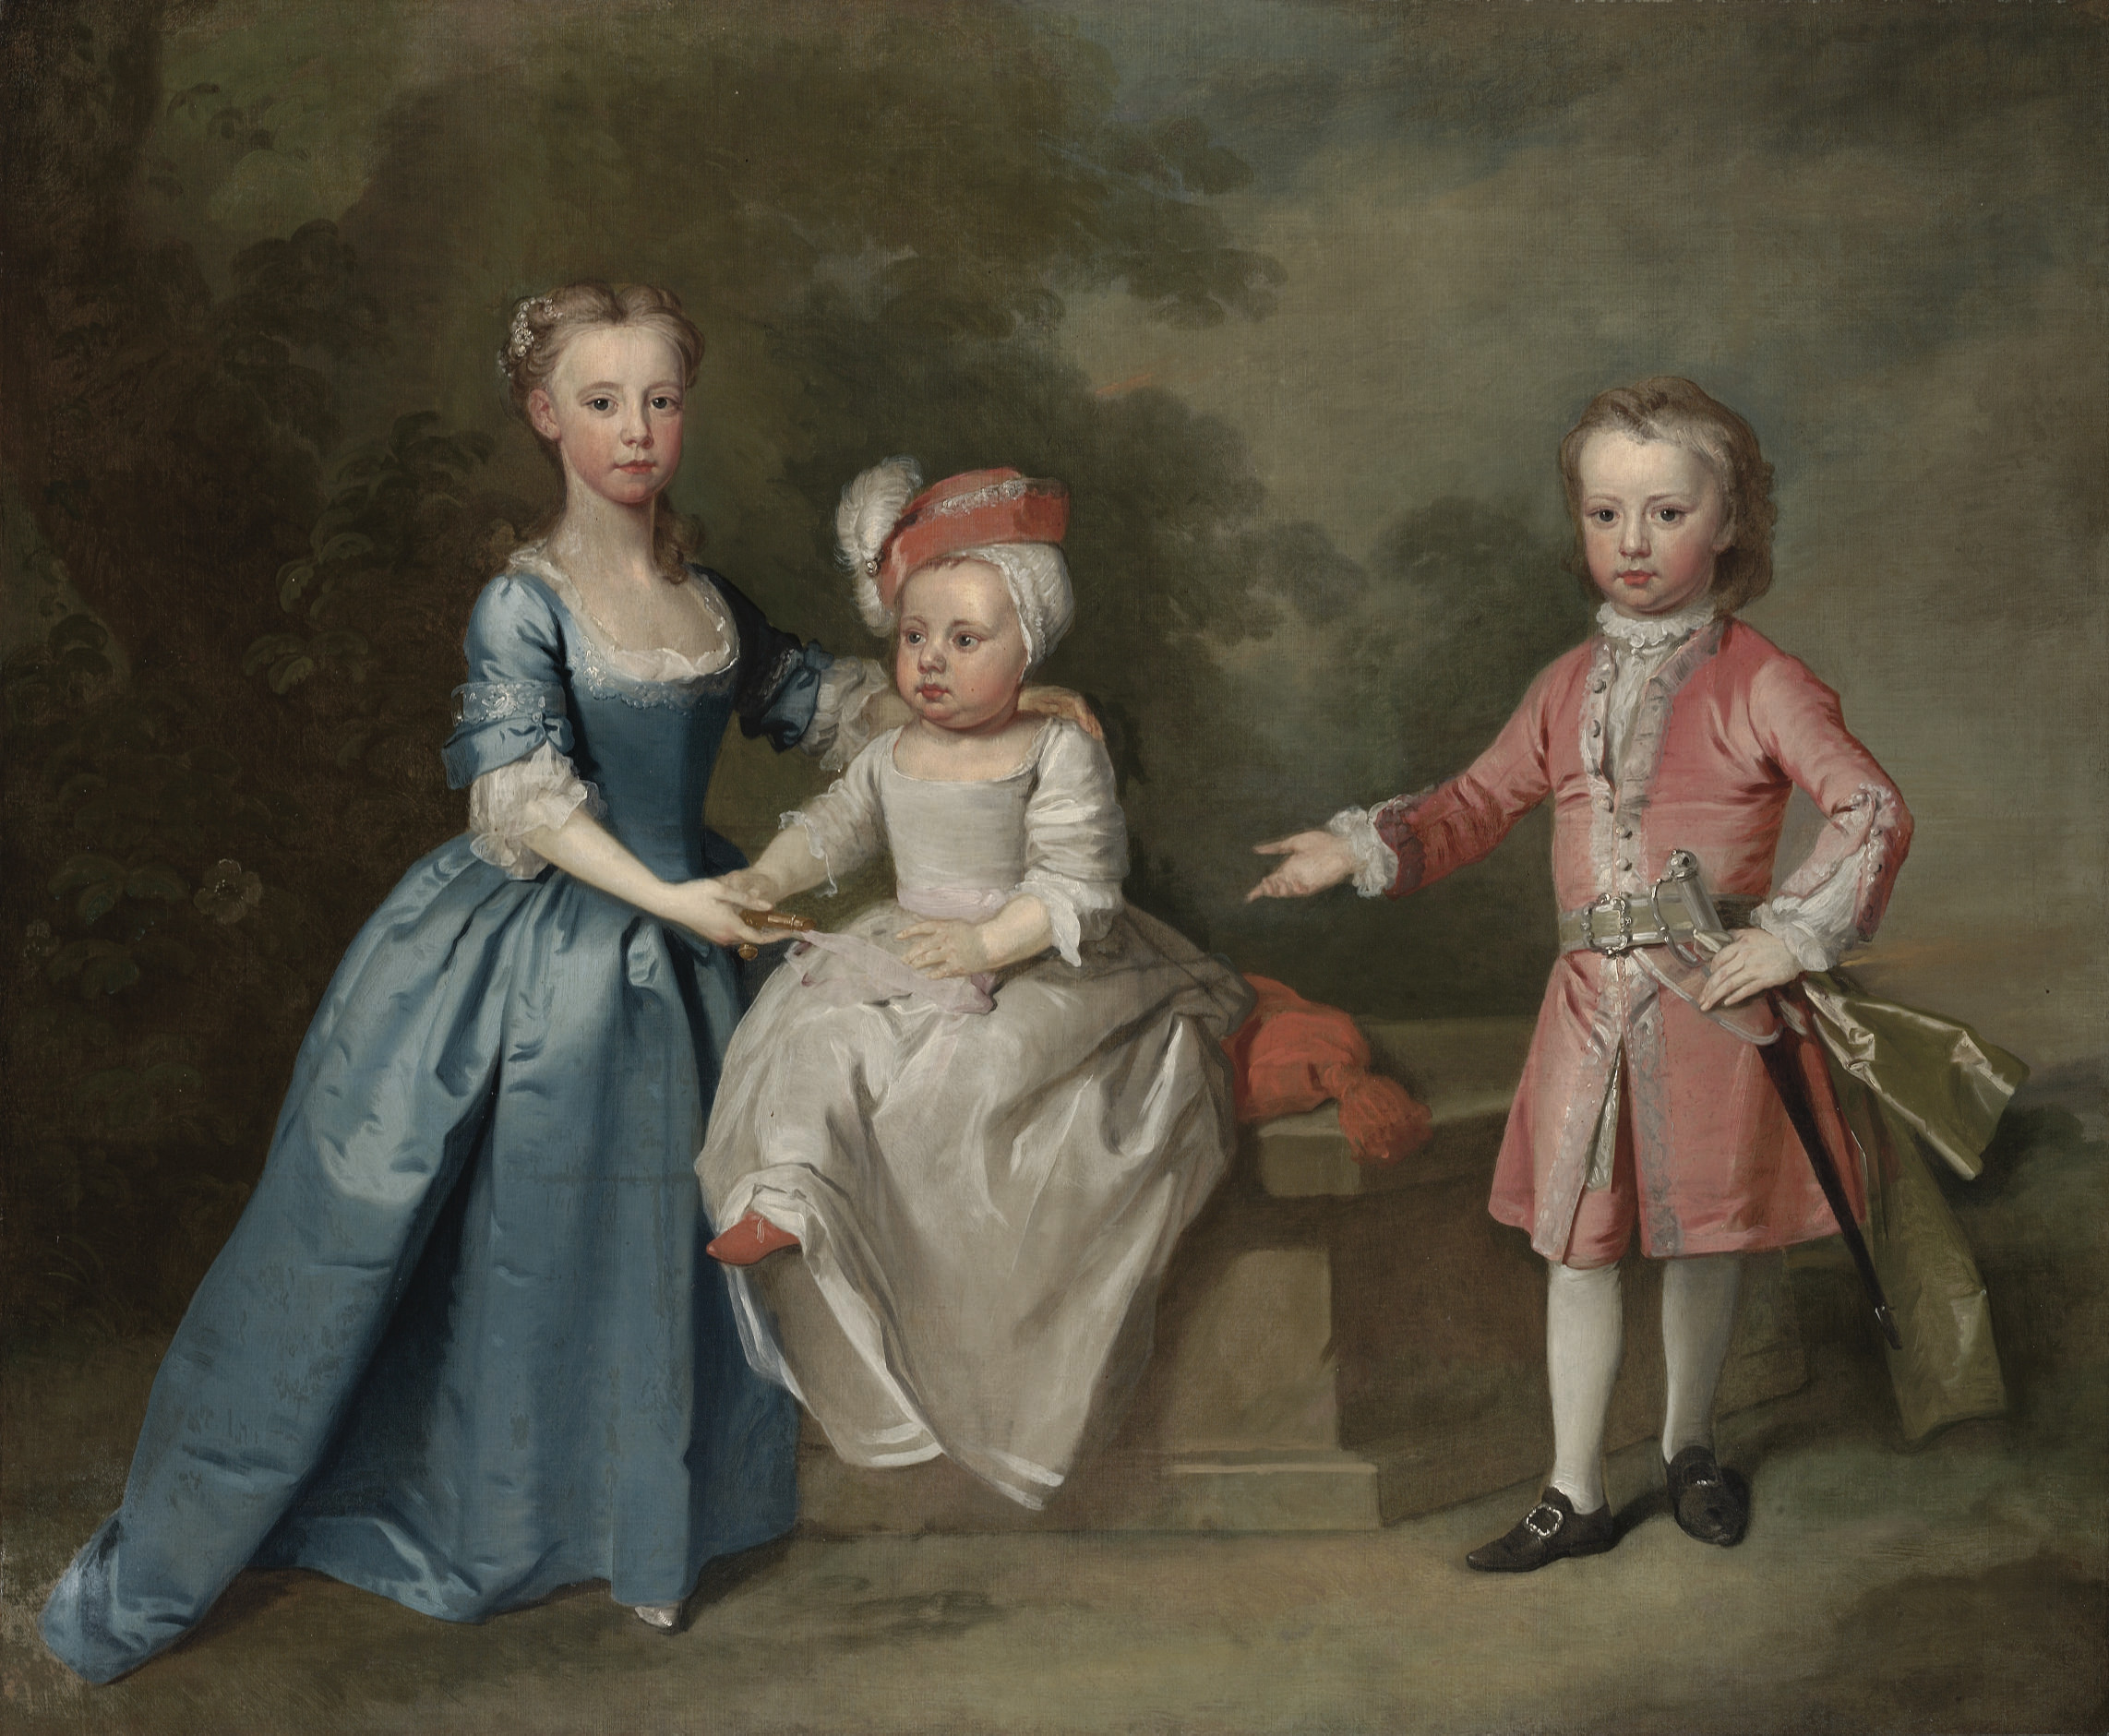 Group Portrait of three children, traditionally identified as the Craven children, full-length, in a wooded landscape